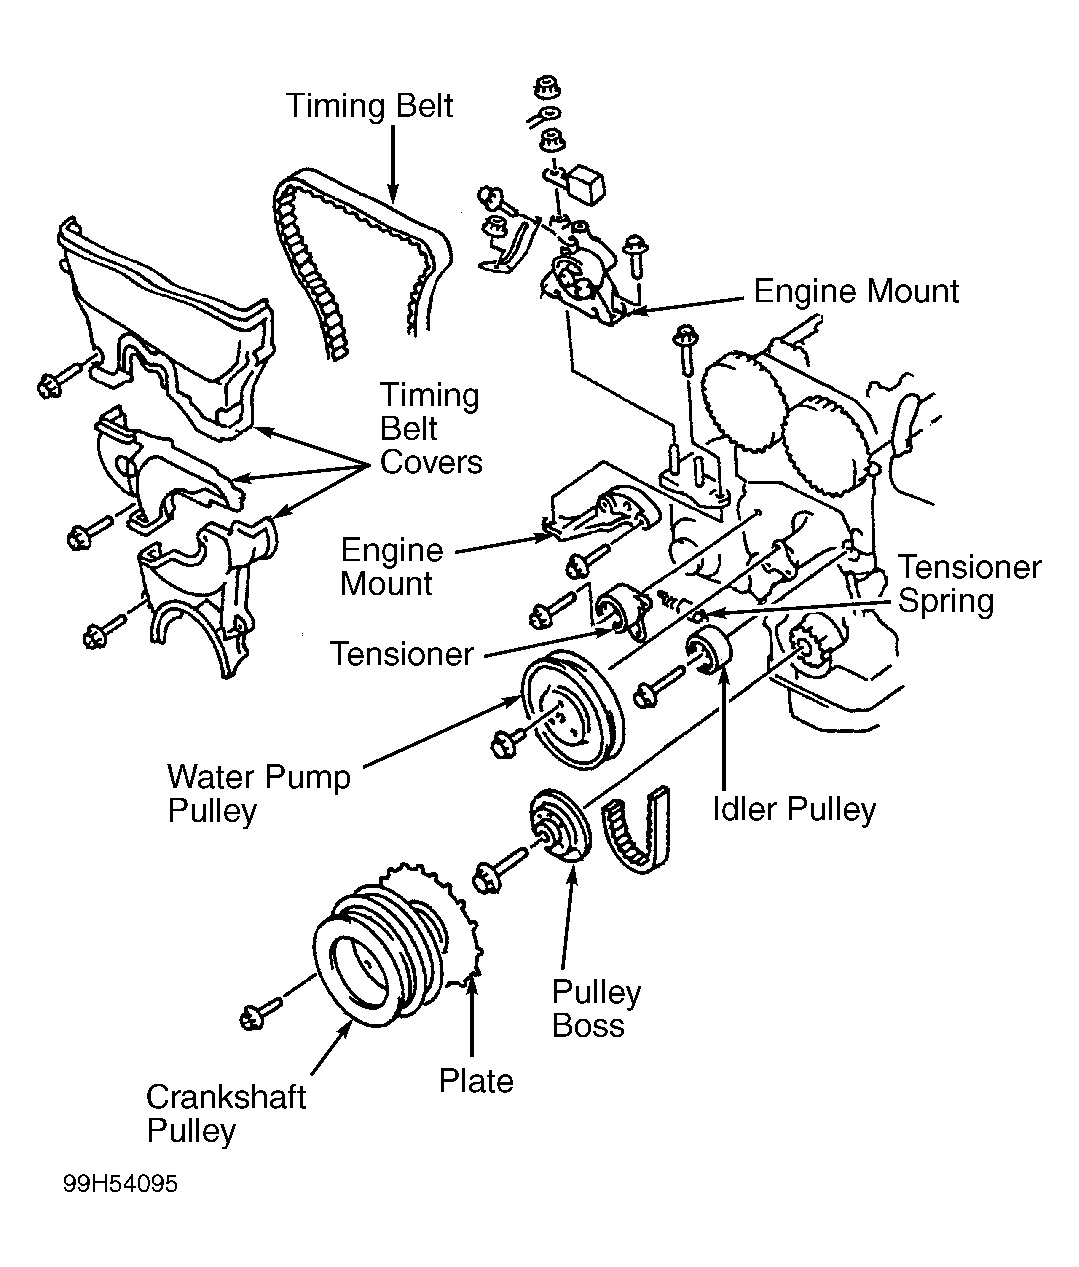 2000 Mazda Protege Engine Diagram Wiring Library 2004 Ford Ranger Thumb